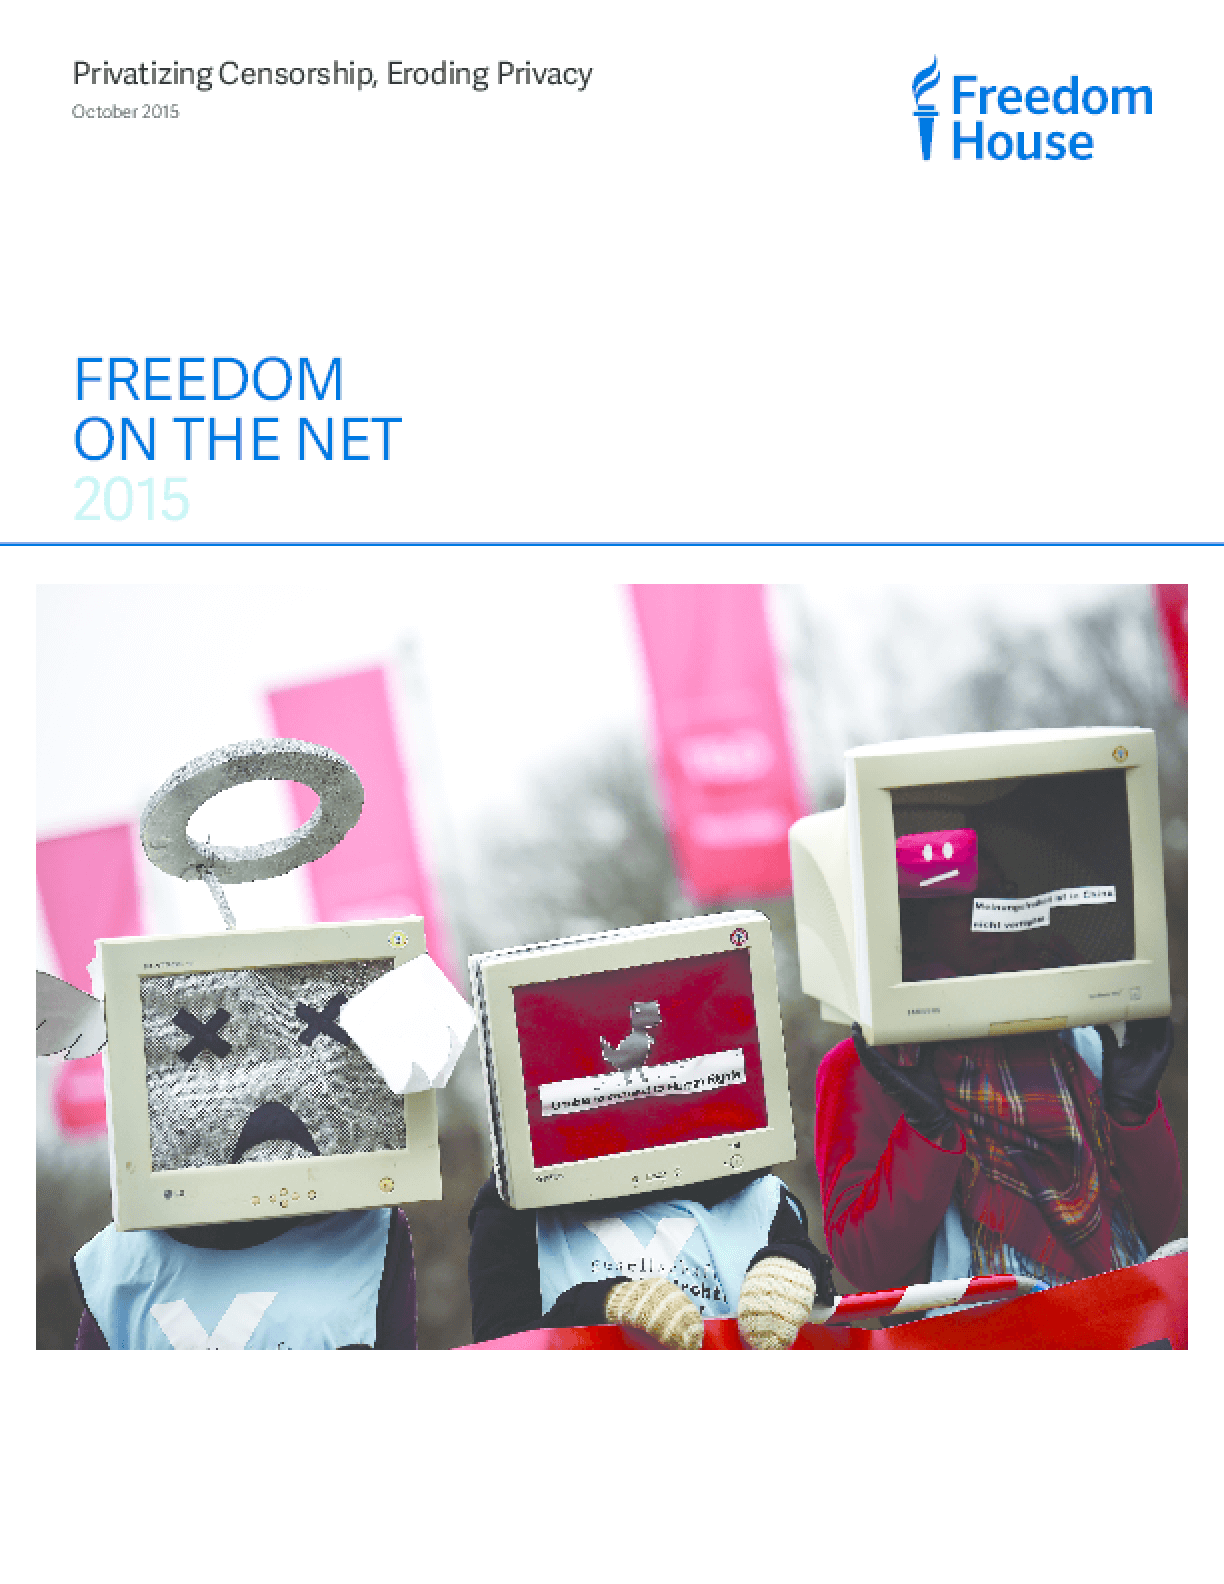 Freedom on the Net 2015: Privatizing Censorship, Eroding Privacy (Summary)